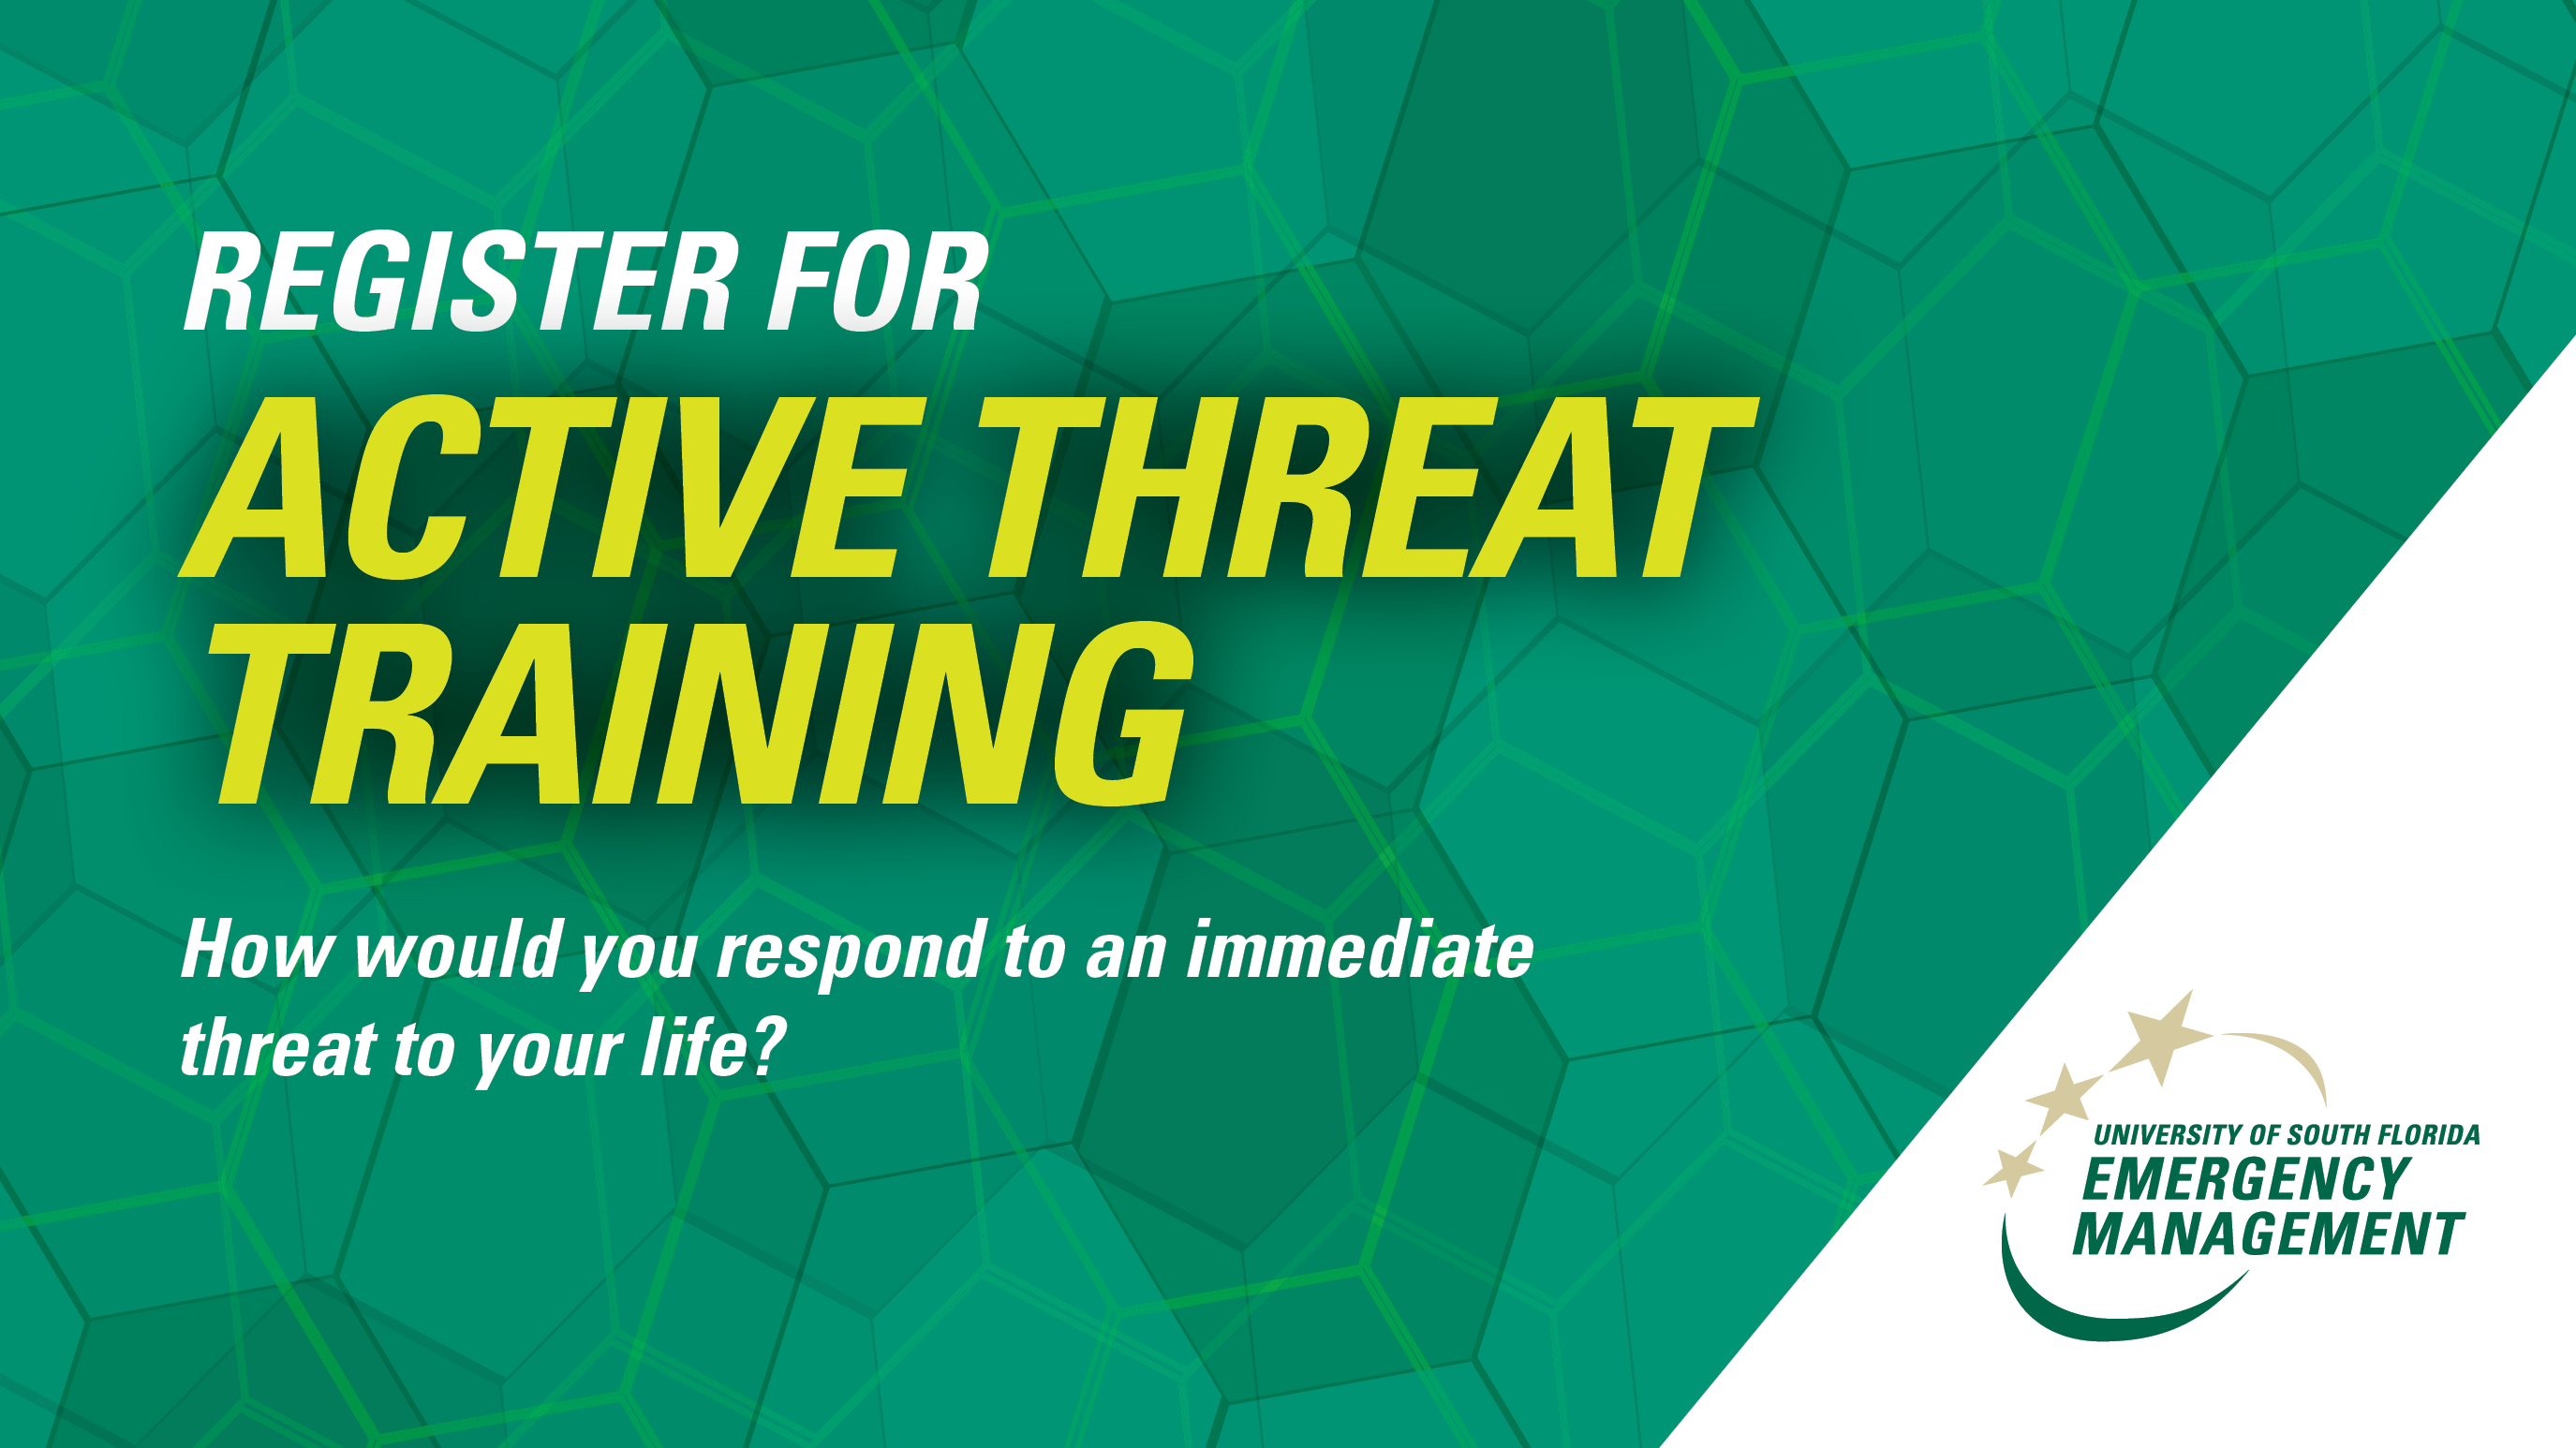 Register for Active Threat Training. How would you respond to an immediate threat to your life?